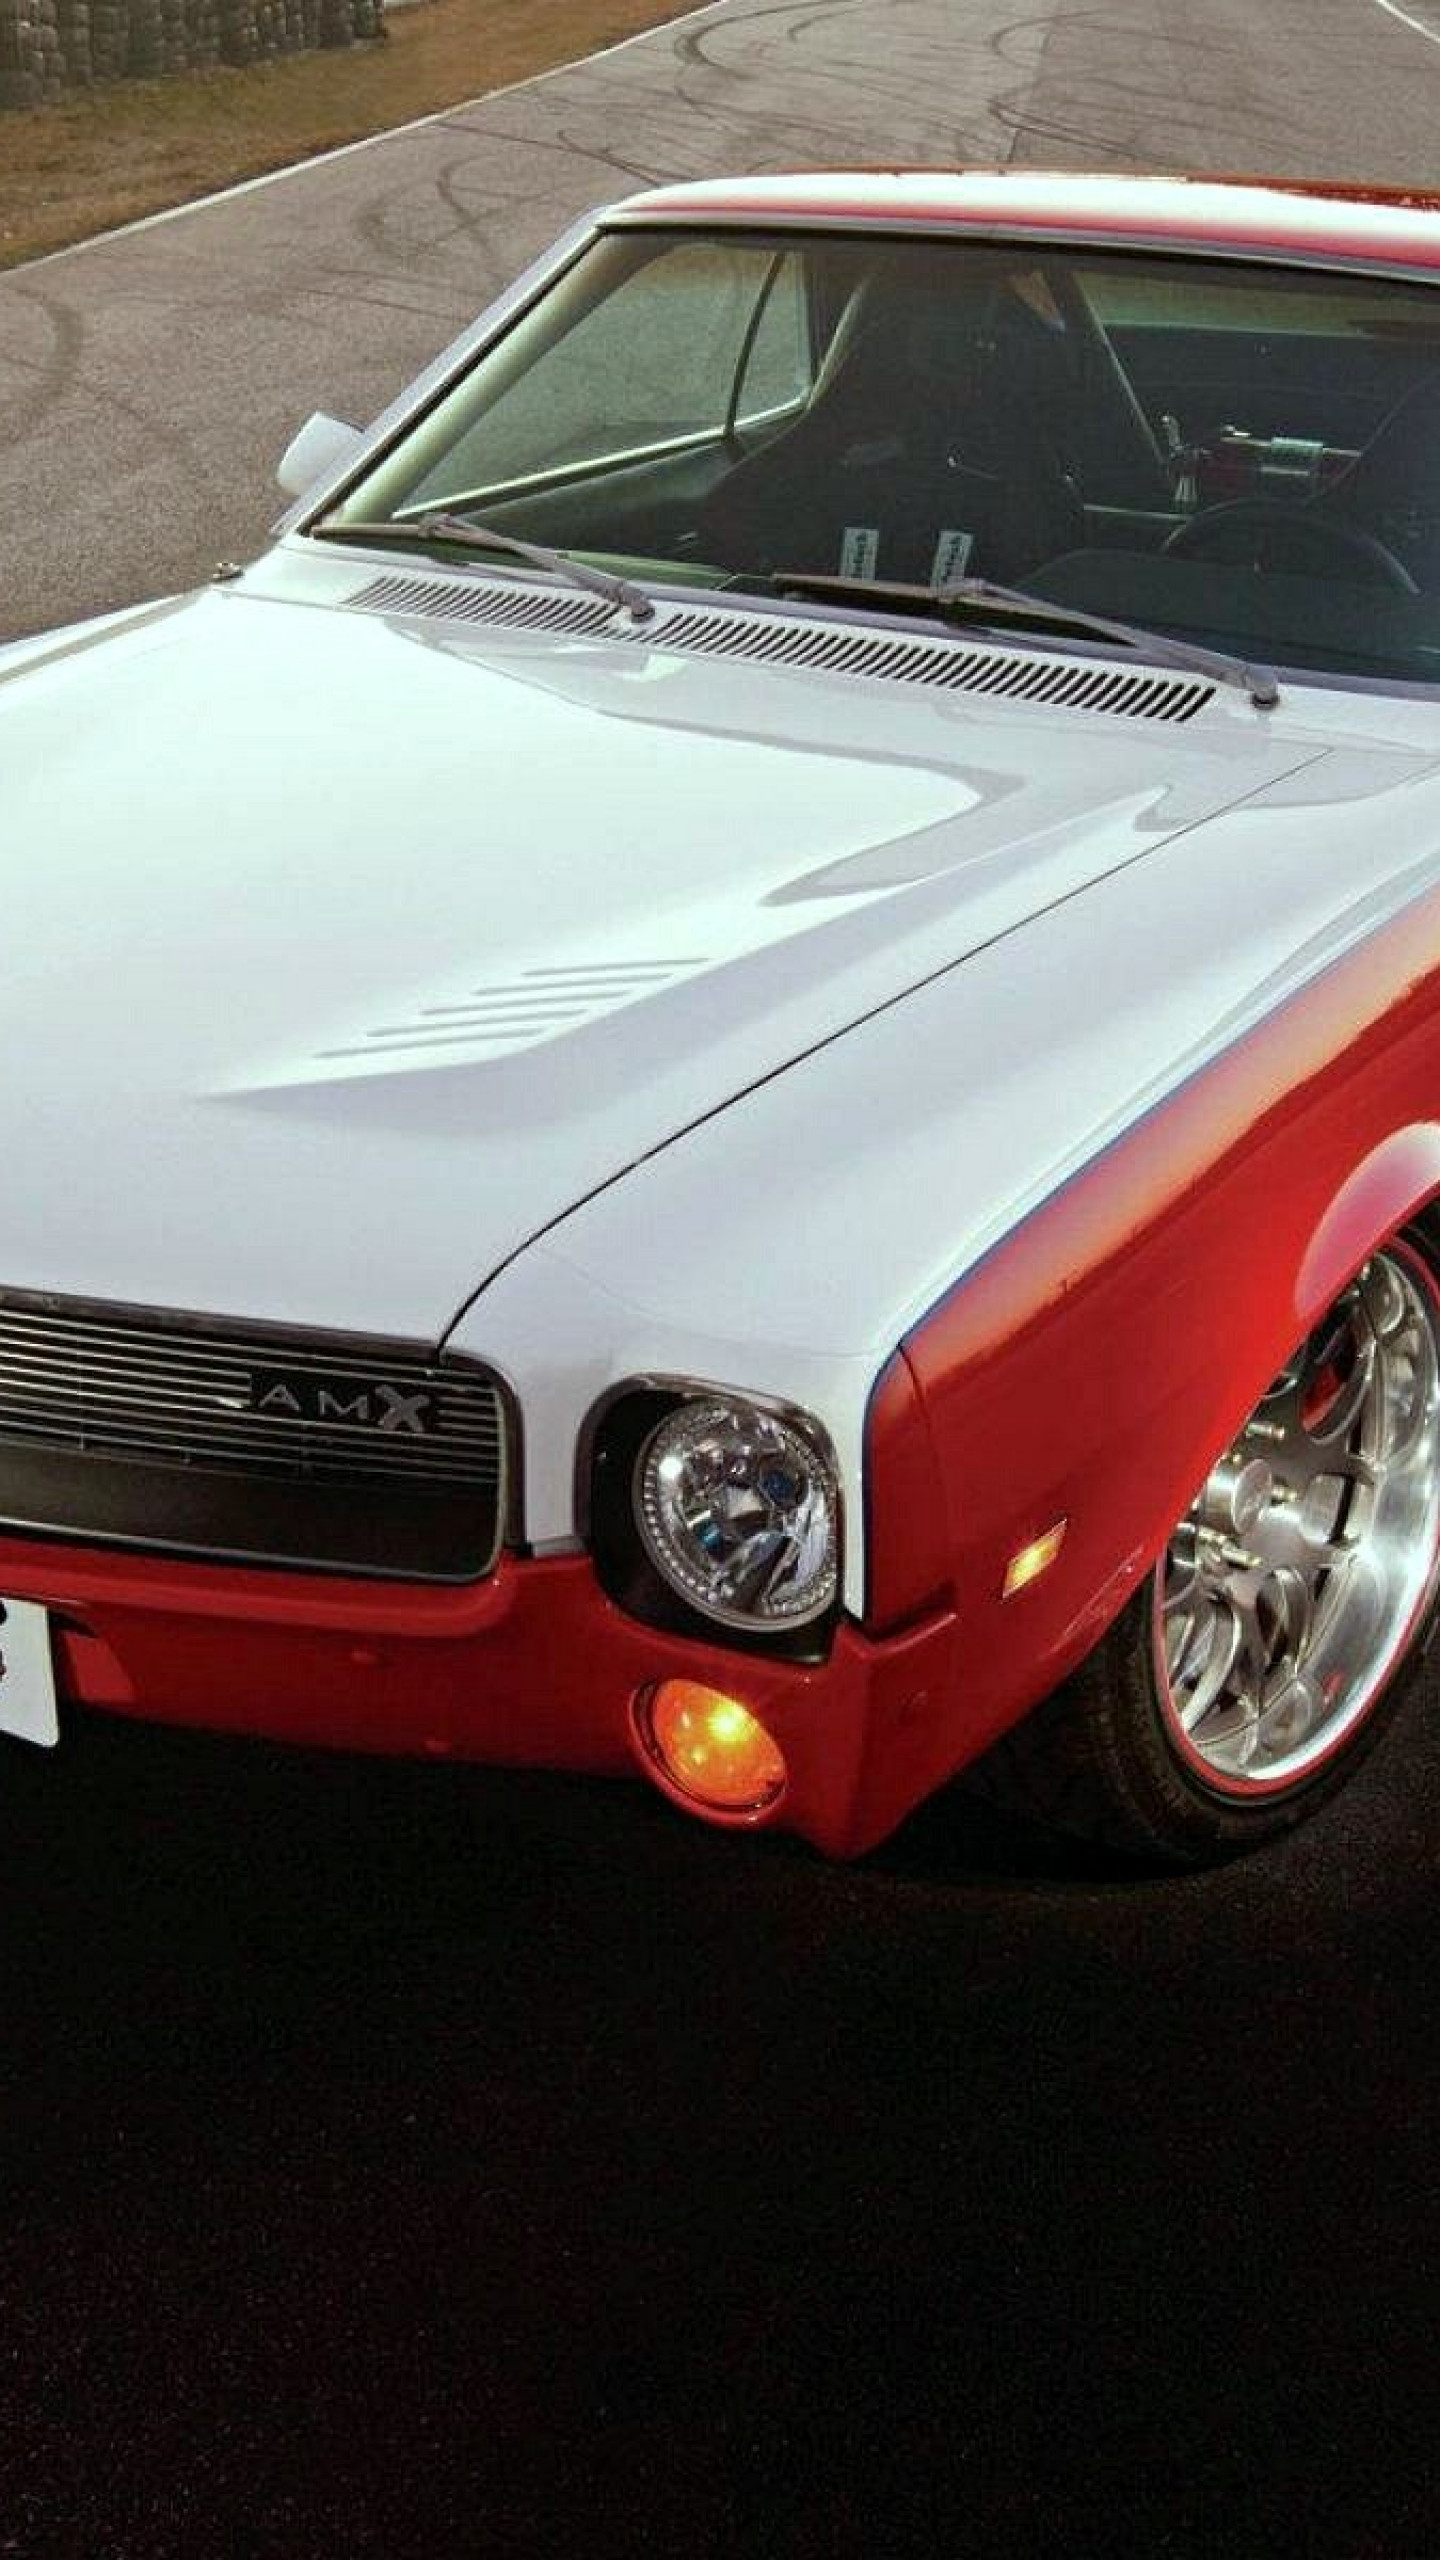 1440x2560  Wallpaper 1969 amc amx, american muscle car, style, retro